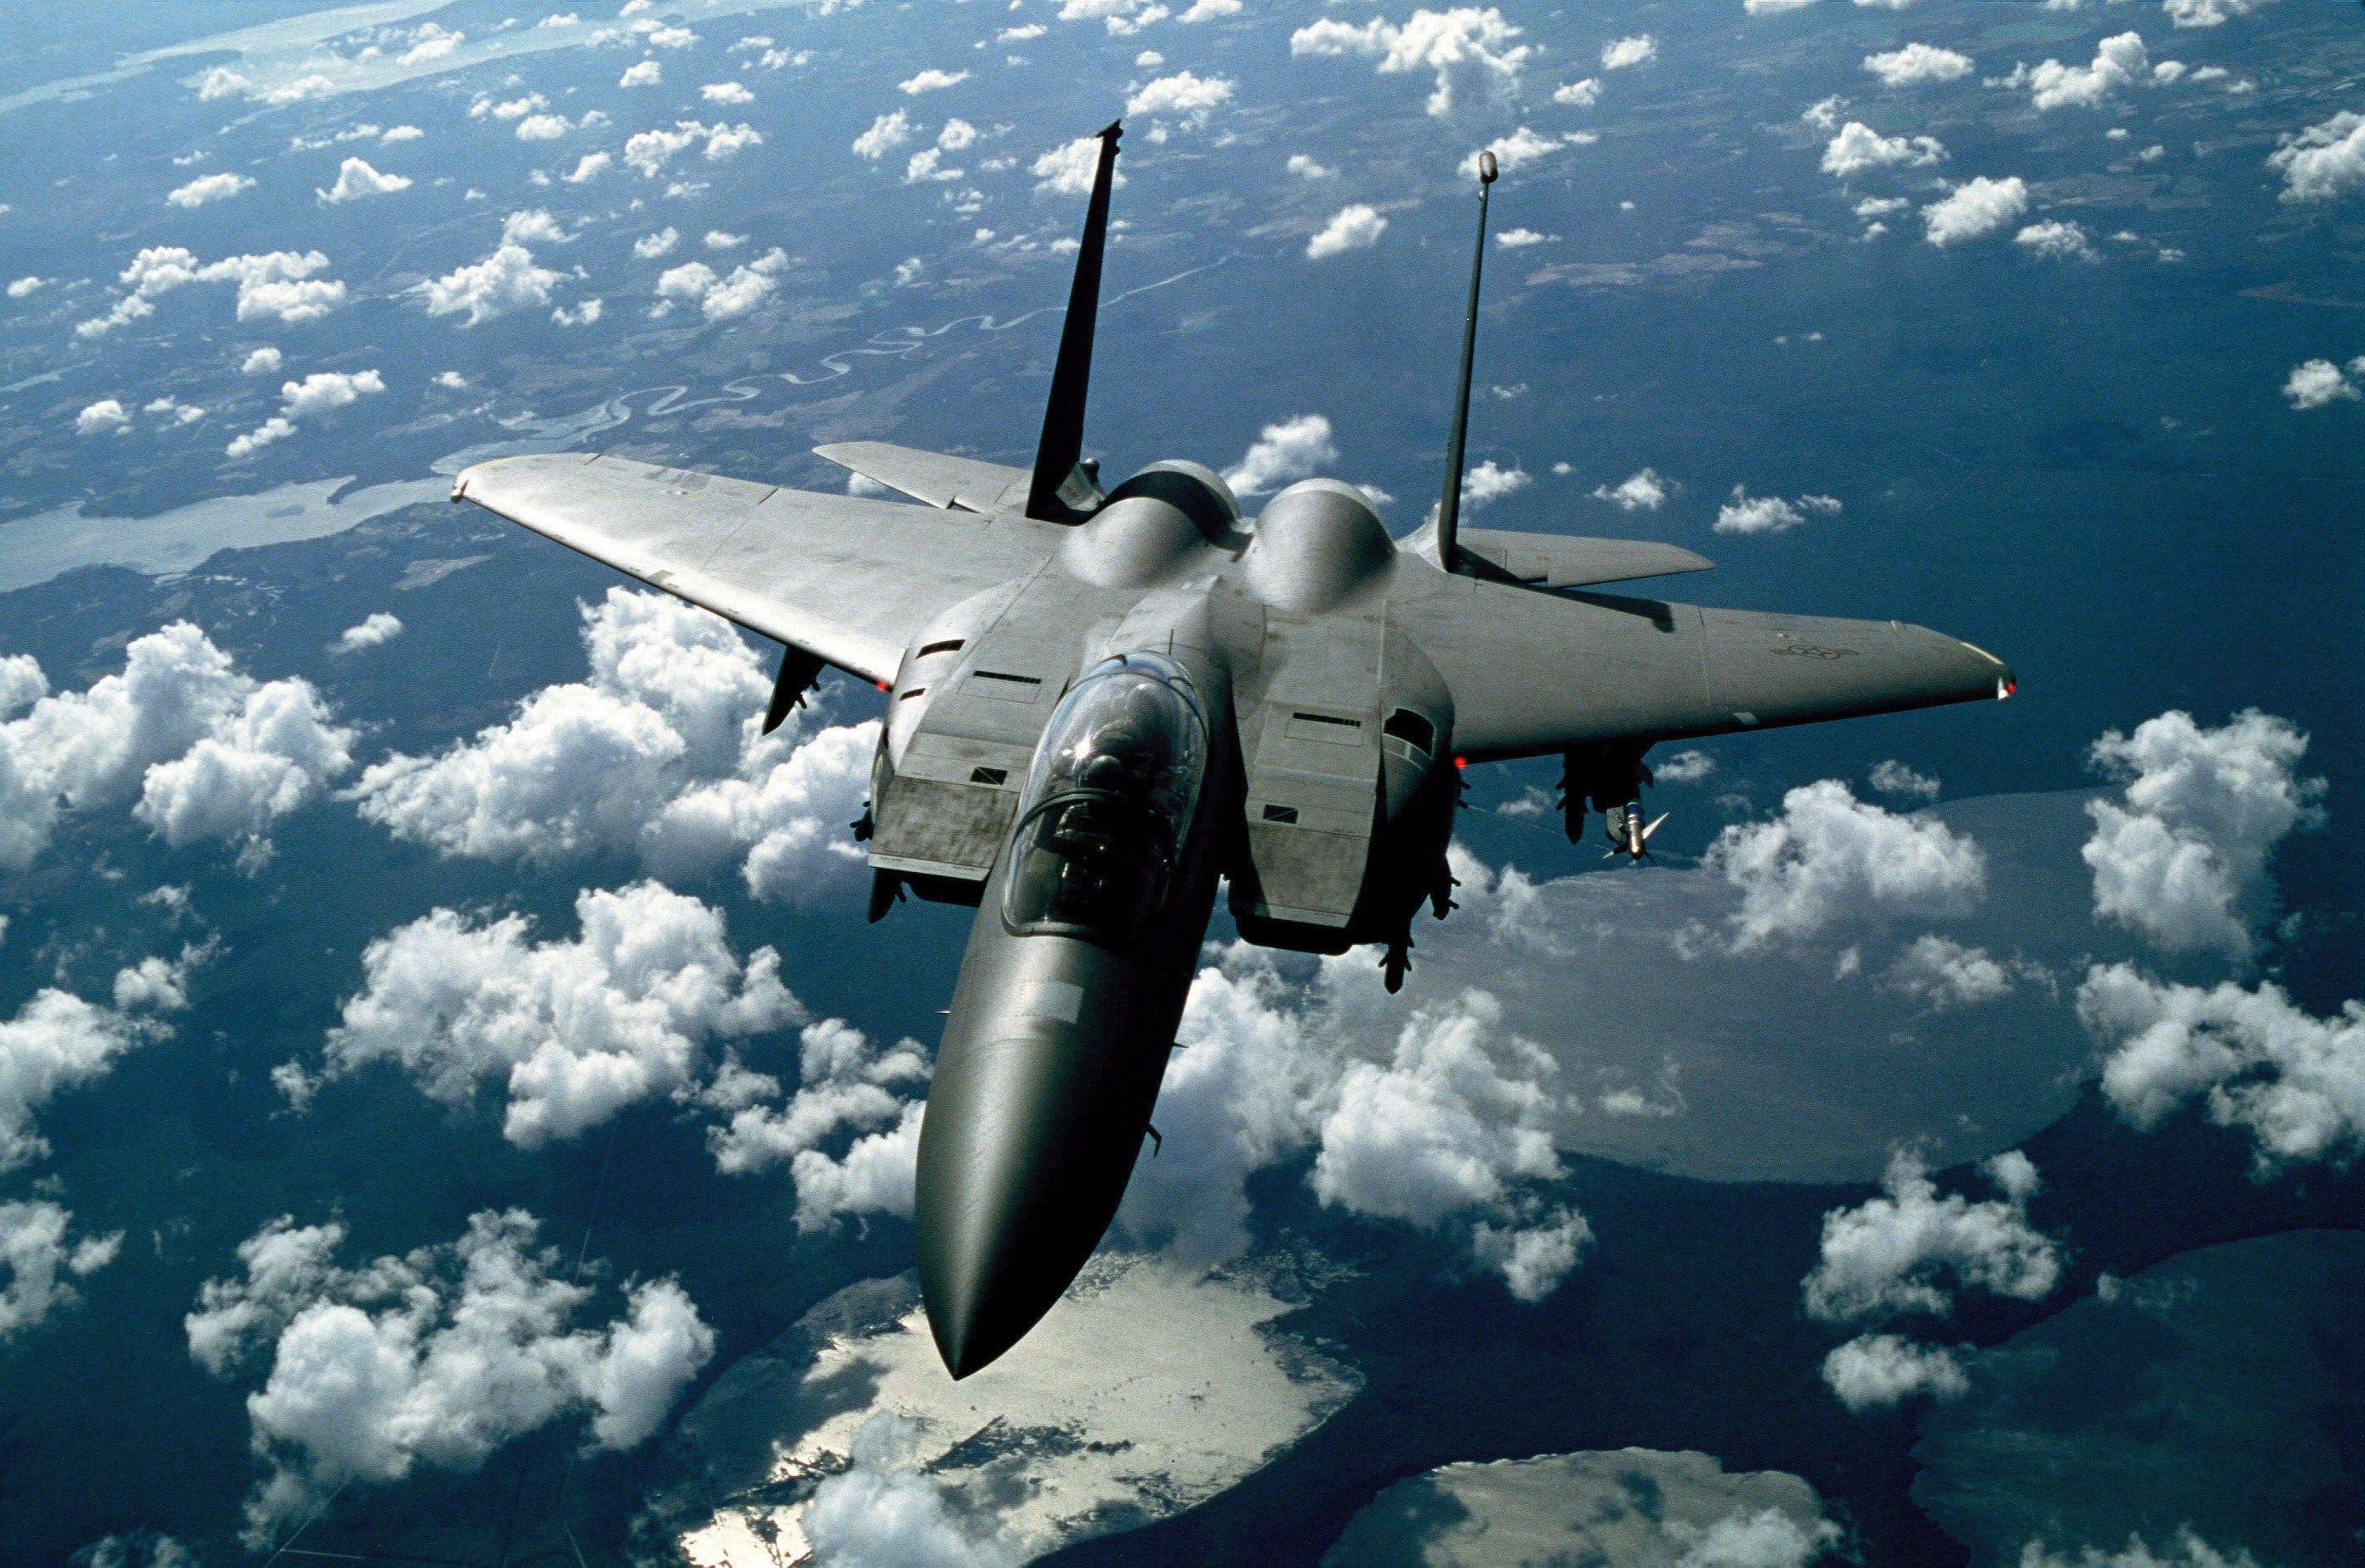 Gray Fighter Jet in White Clouds